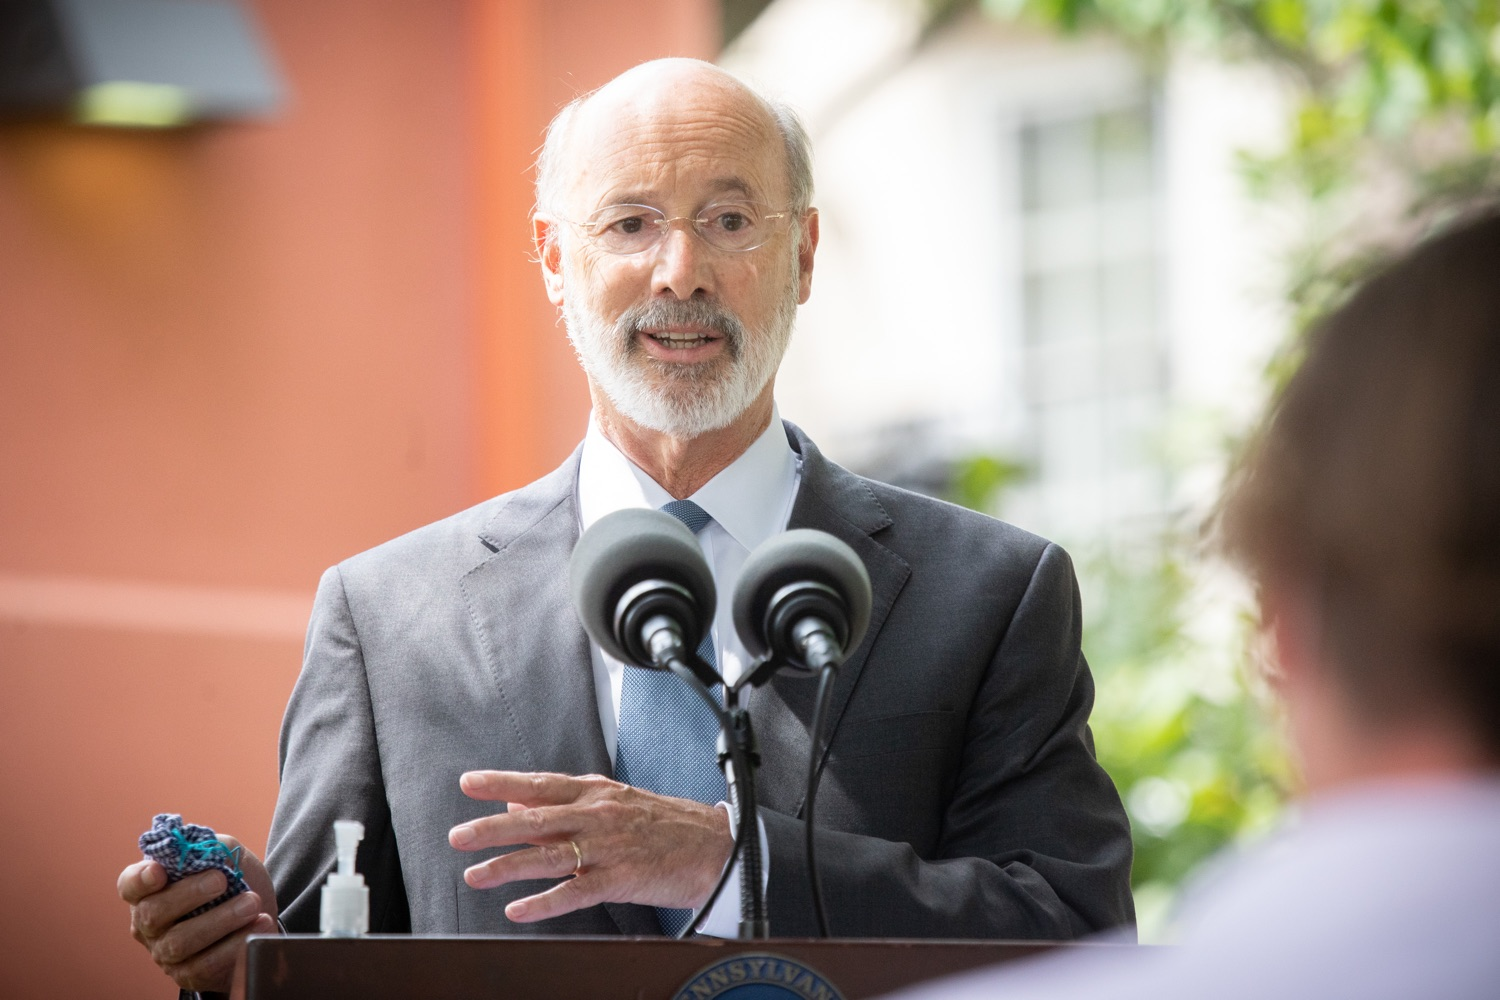 "<a href=""https://filesource.wostreaming.net/commonwealthofpa/photo/18178_GOV_Lancaster_Health_dz__11.jpg"" target=""_blank"">⇣ Download Photo<br></a>Pennsylvania Governor Tom Wolf speaking at the event.  Governor Tom Wolf today visited Lancaster Health Center, a federally qualified health center, to thank staff for their work to ensure the communitys most vulnerable receive care during COVID-19 and year-round.  Harrisburg, PA  July 24, 2020"